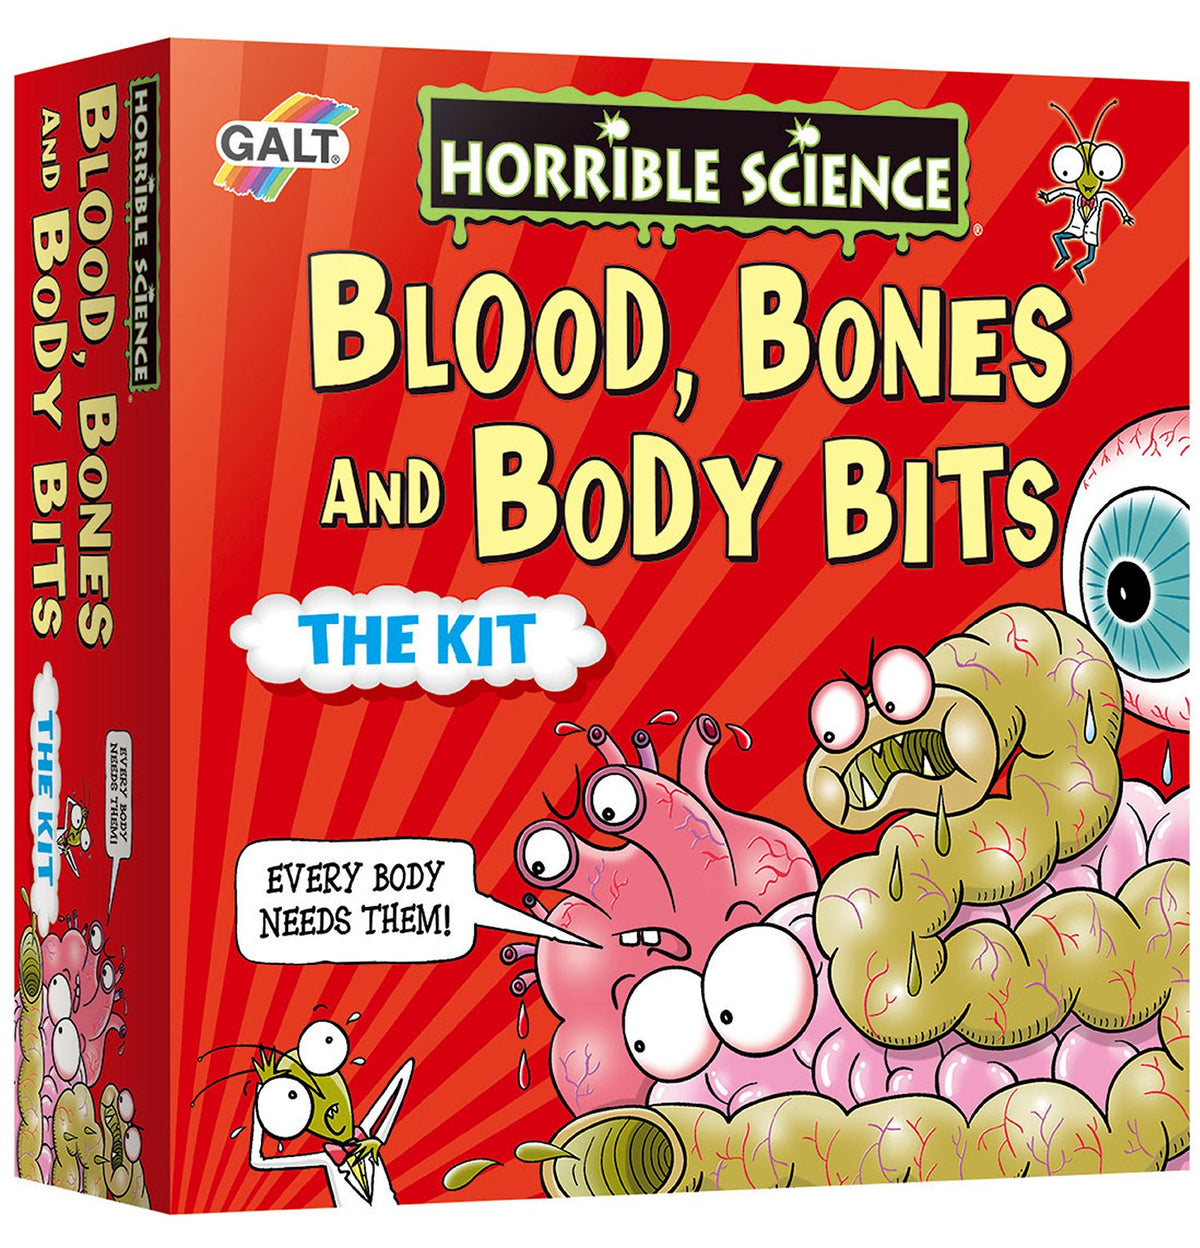 Blood, Bones and Body Bits - Galt